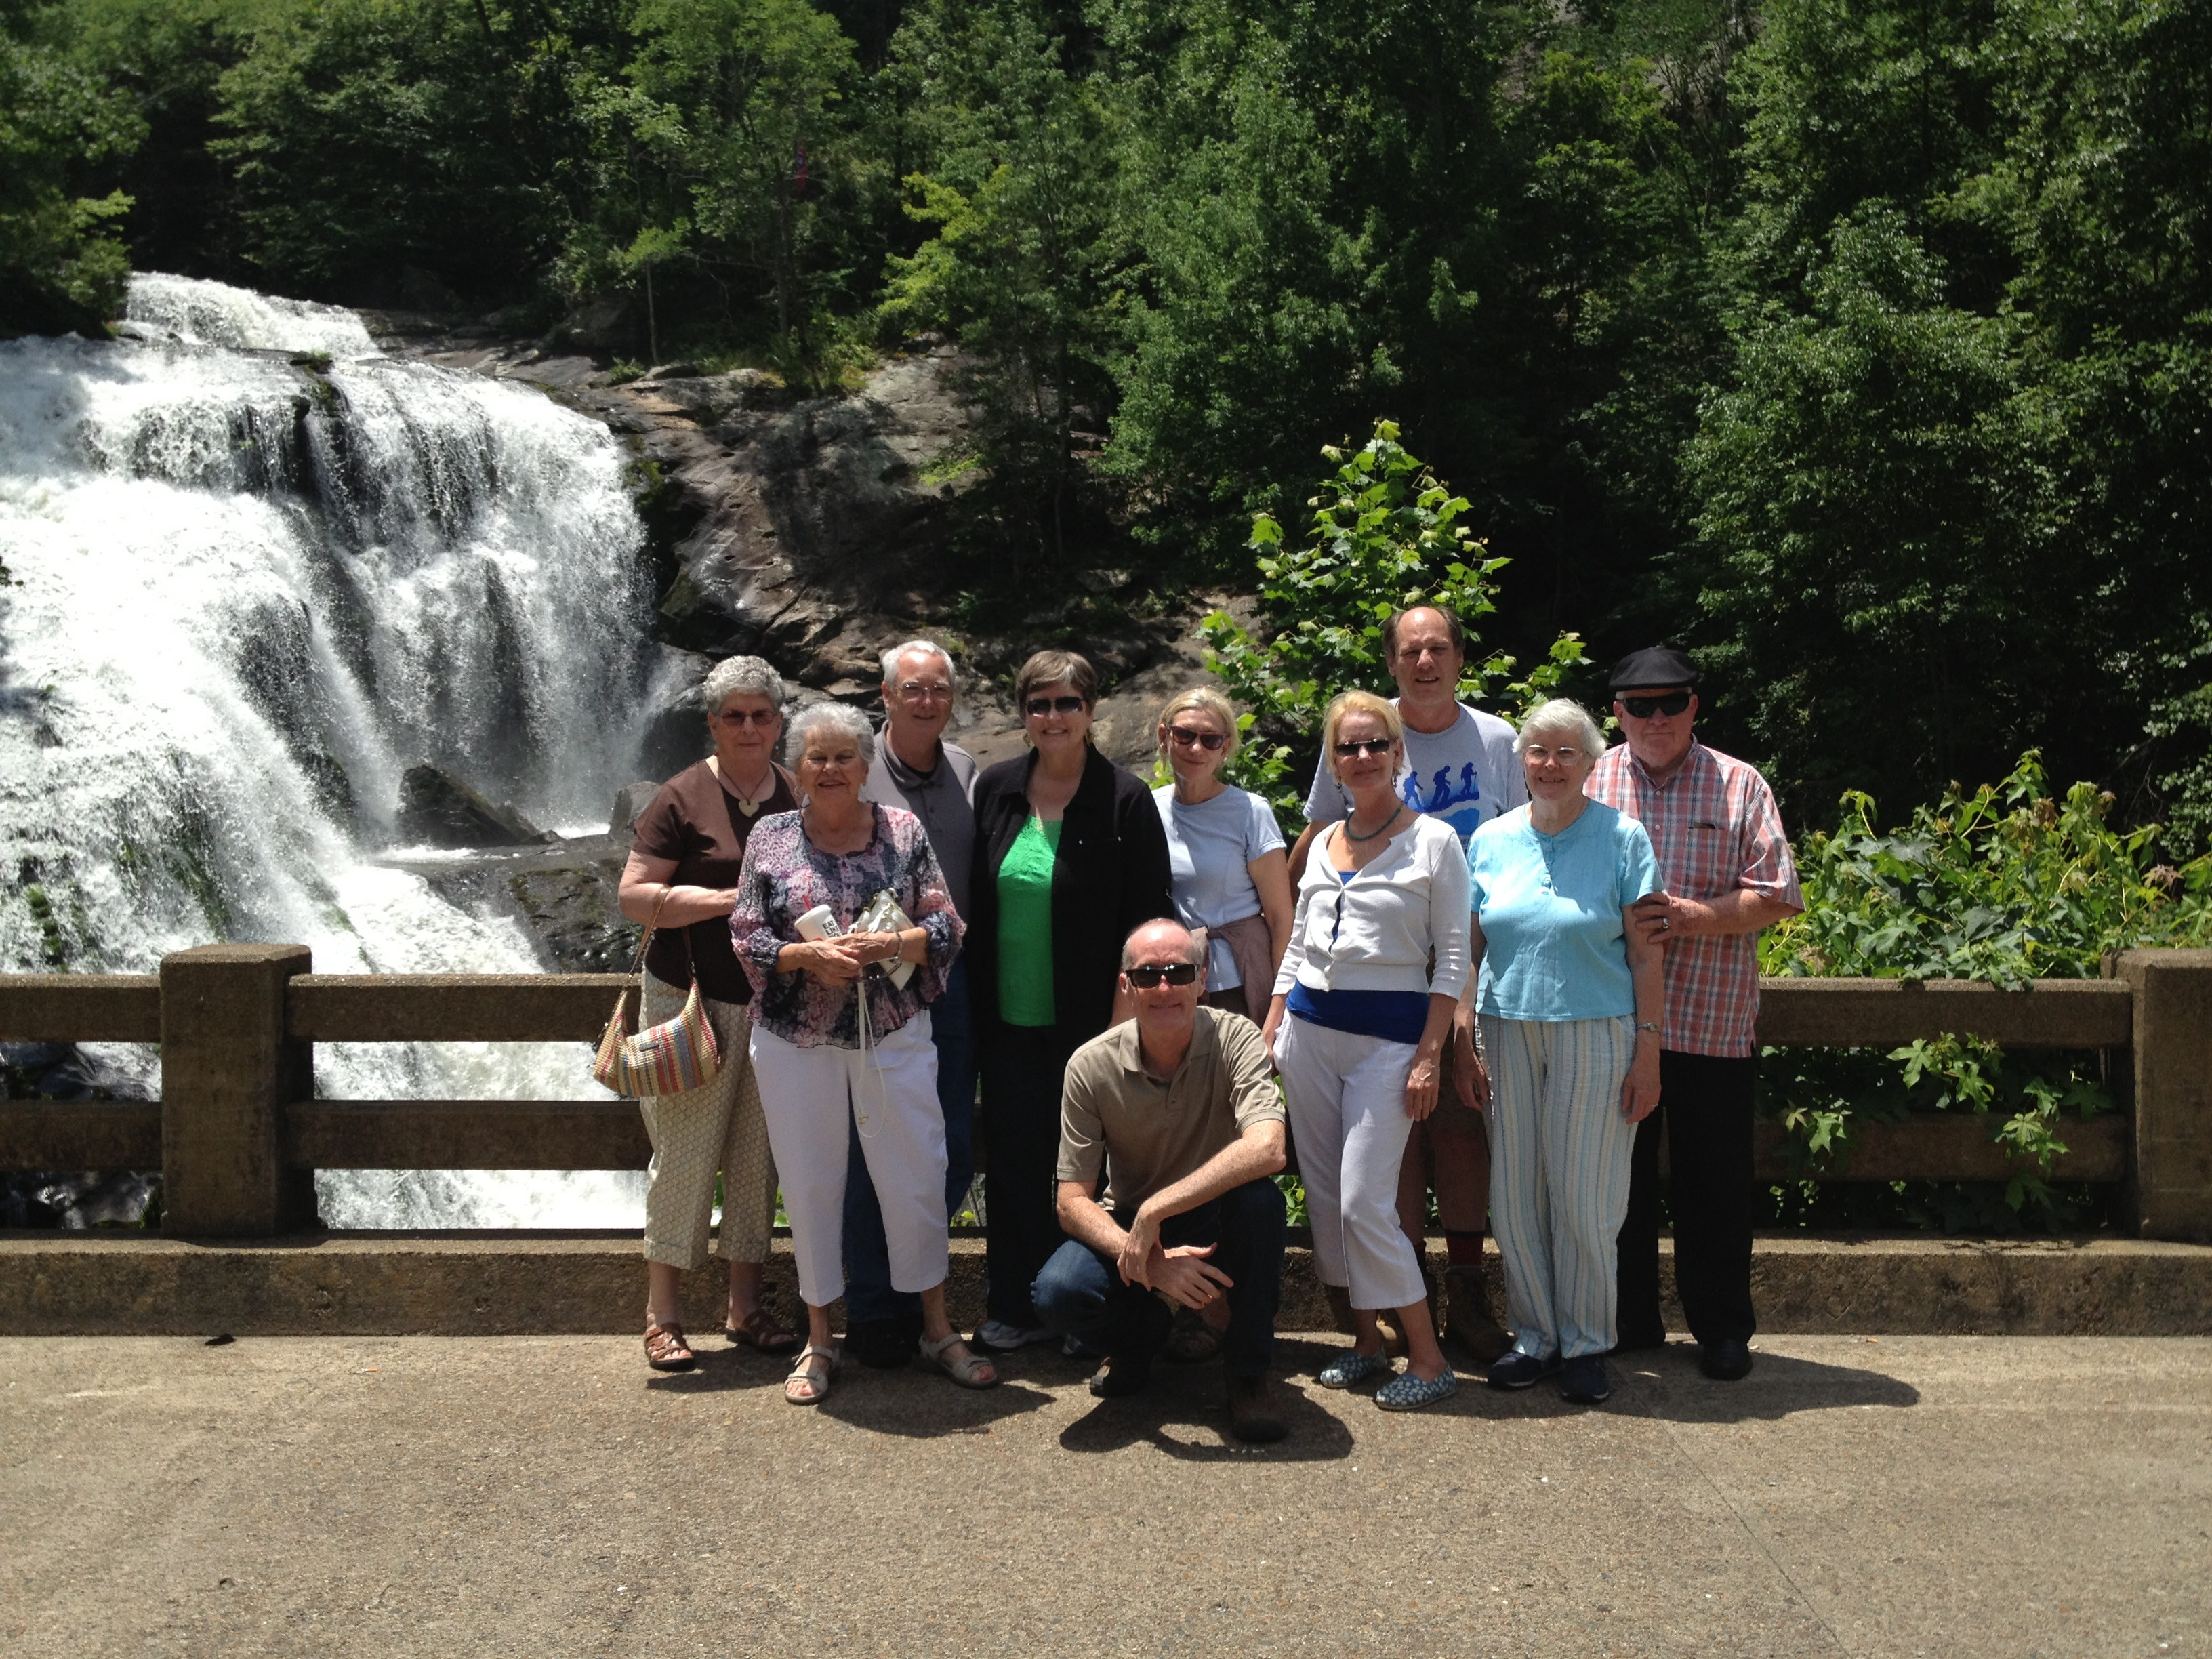 2nd Presbyterian Church goes on a summer outing to Bald River Falls